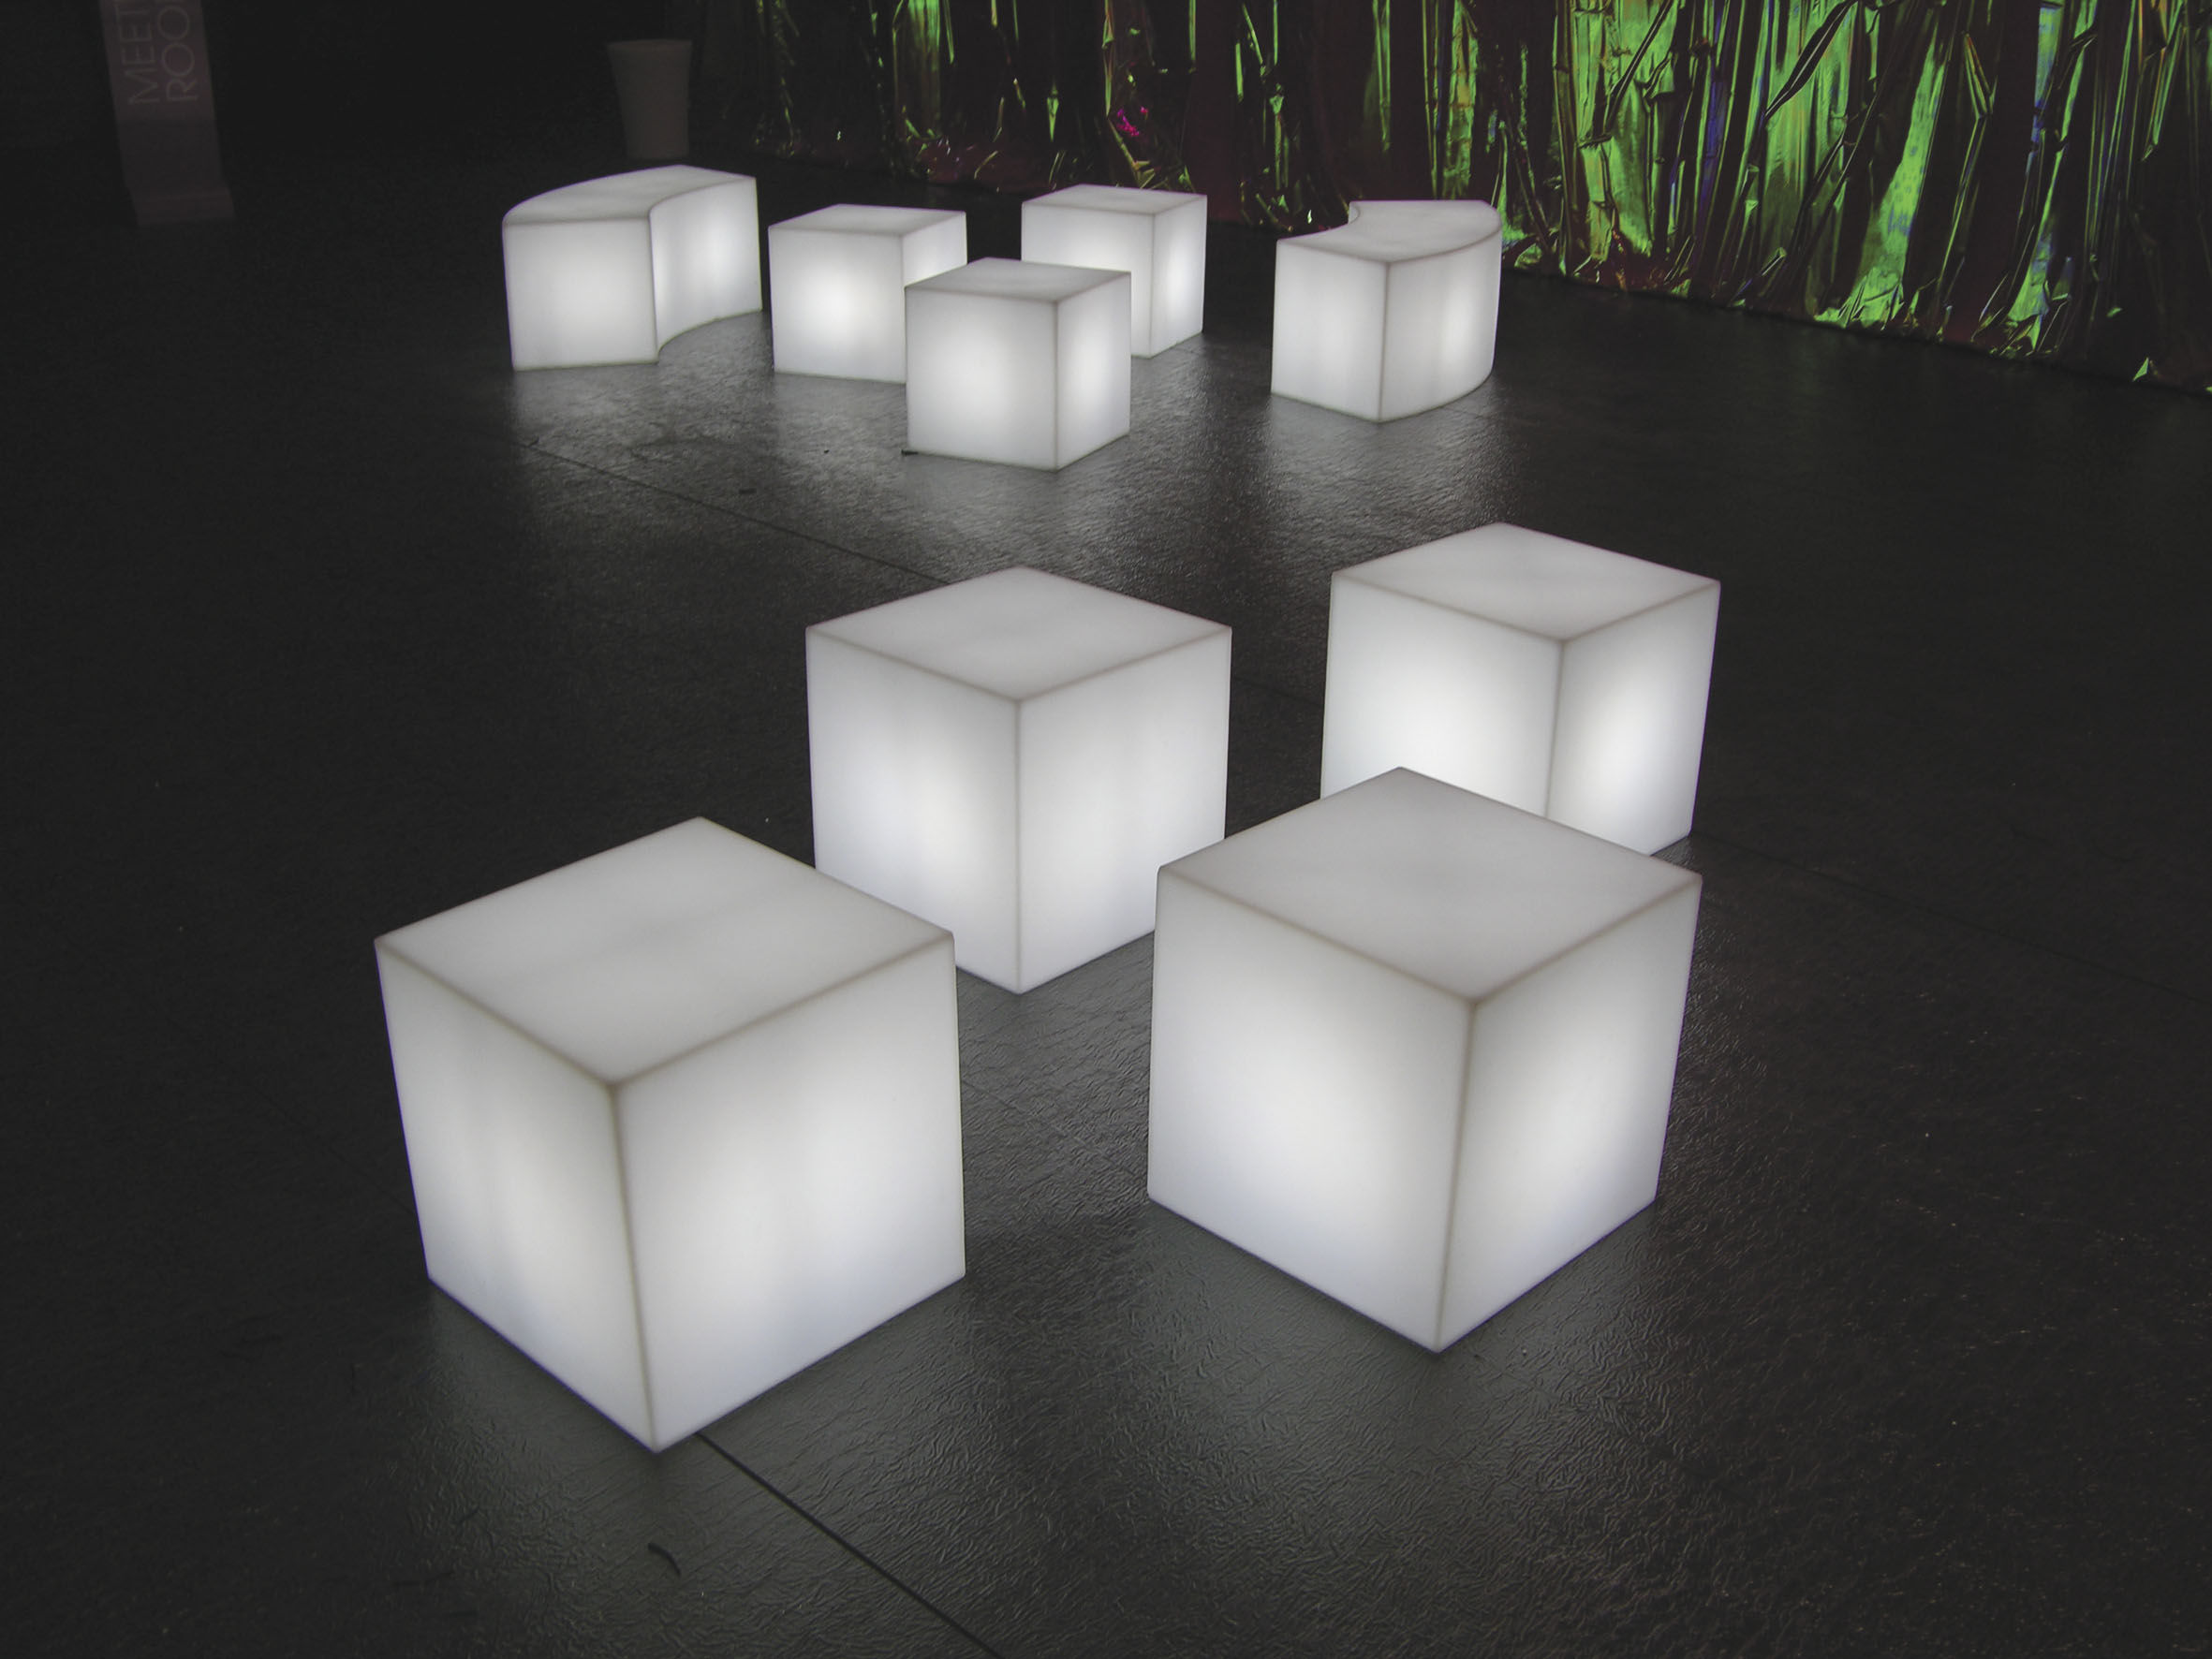 cubo outdoor led tischleuchte kabellos 25 x 25 x 25 cm f r den au eneinsat ebay. Black Bedroom Furniture Sets. Home Design Ideas